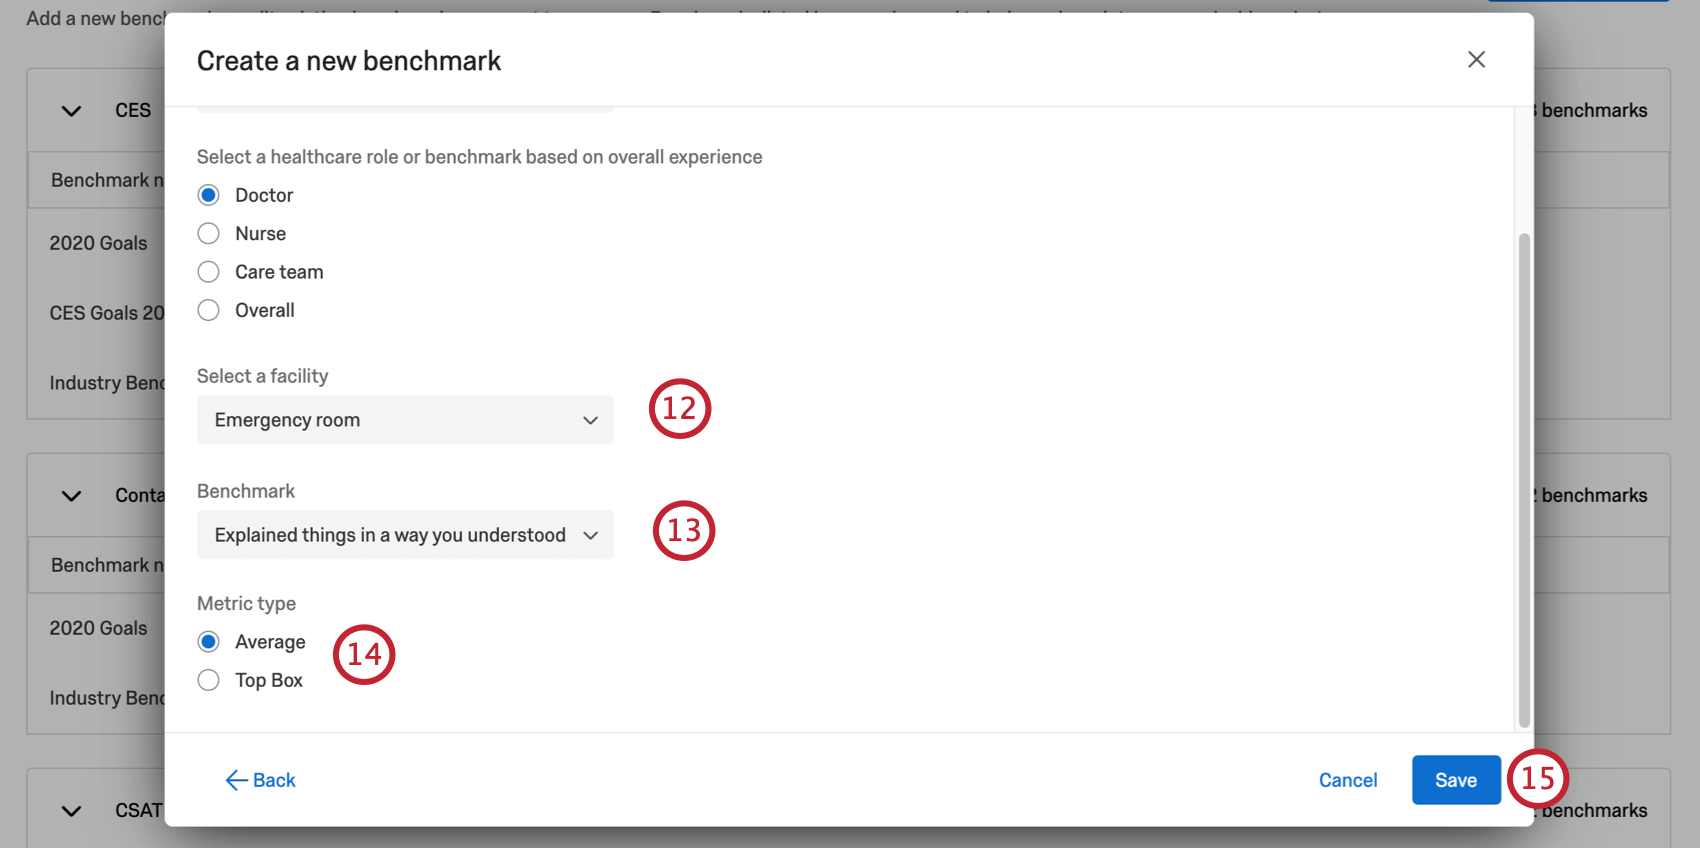 Two dropdowns, then a multiple choice for metric. Import button bottom-right